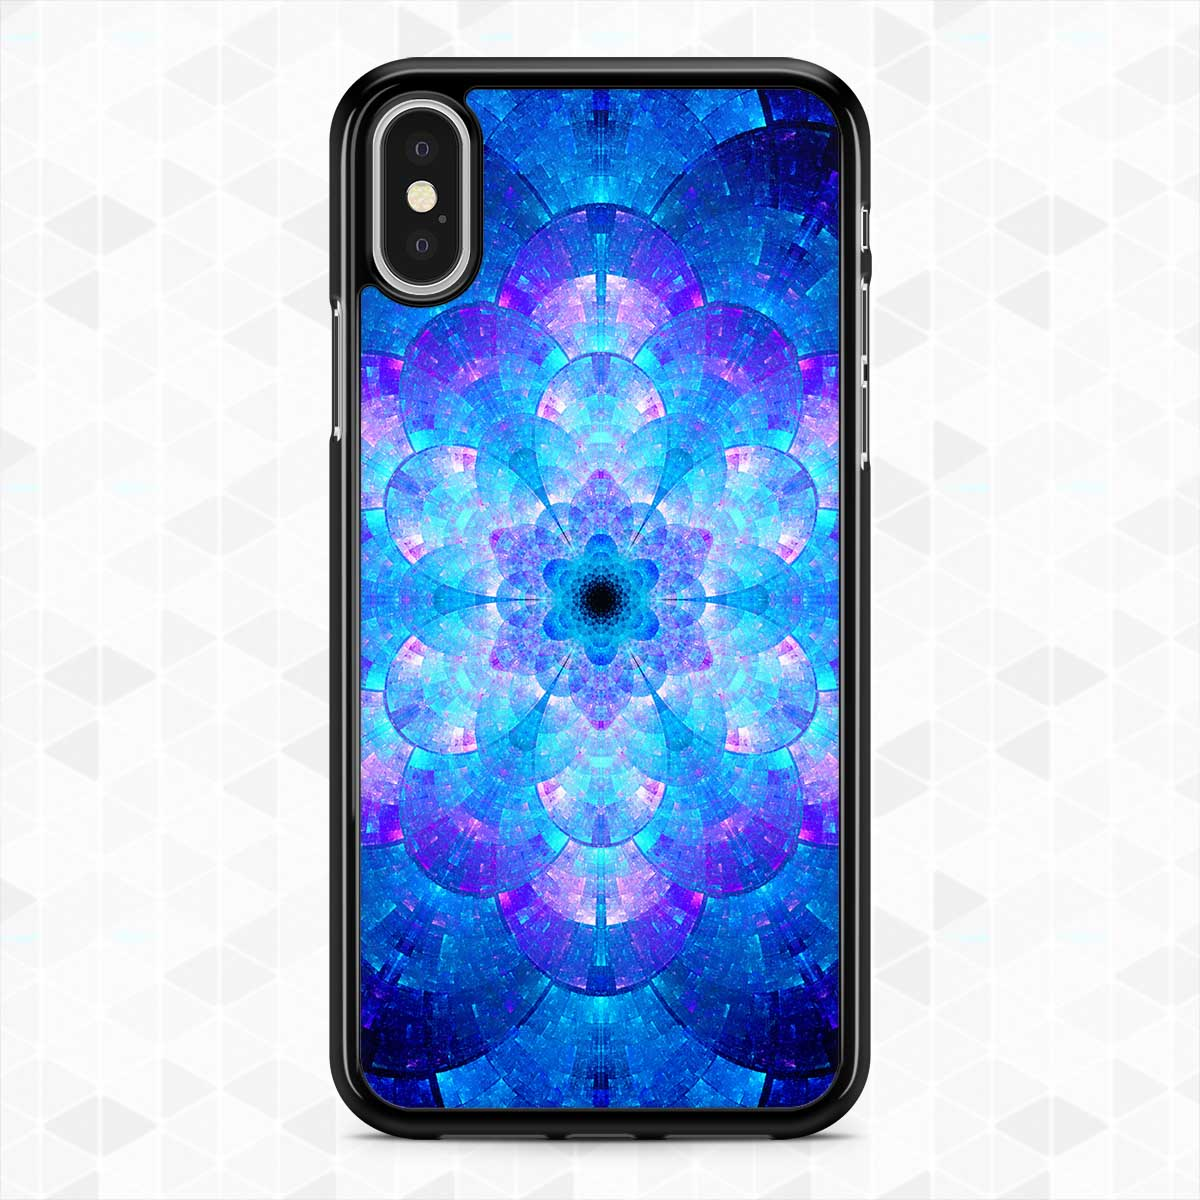 low priced 3119a 13ca8 Rare!iPhone X 8+ 7 Plus 6s 5s Case!9!7Holographic!Mandala68 Samsung Note 9  Cases